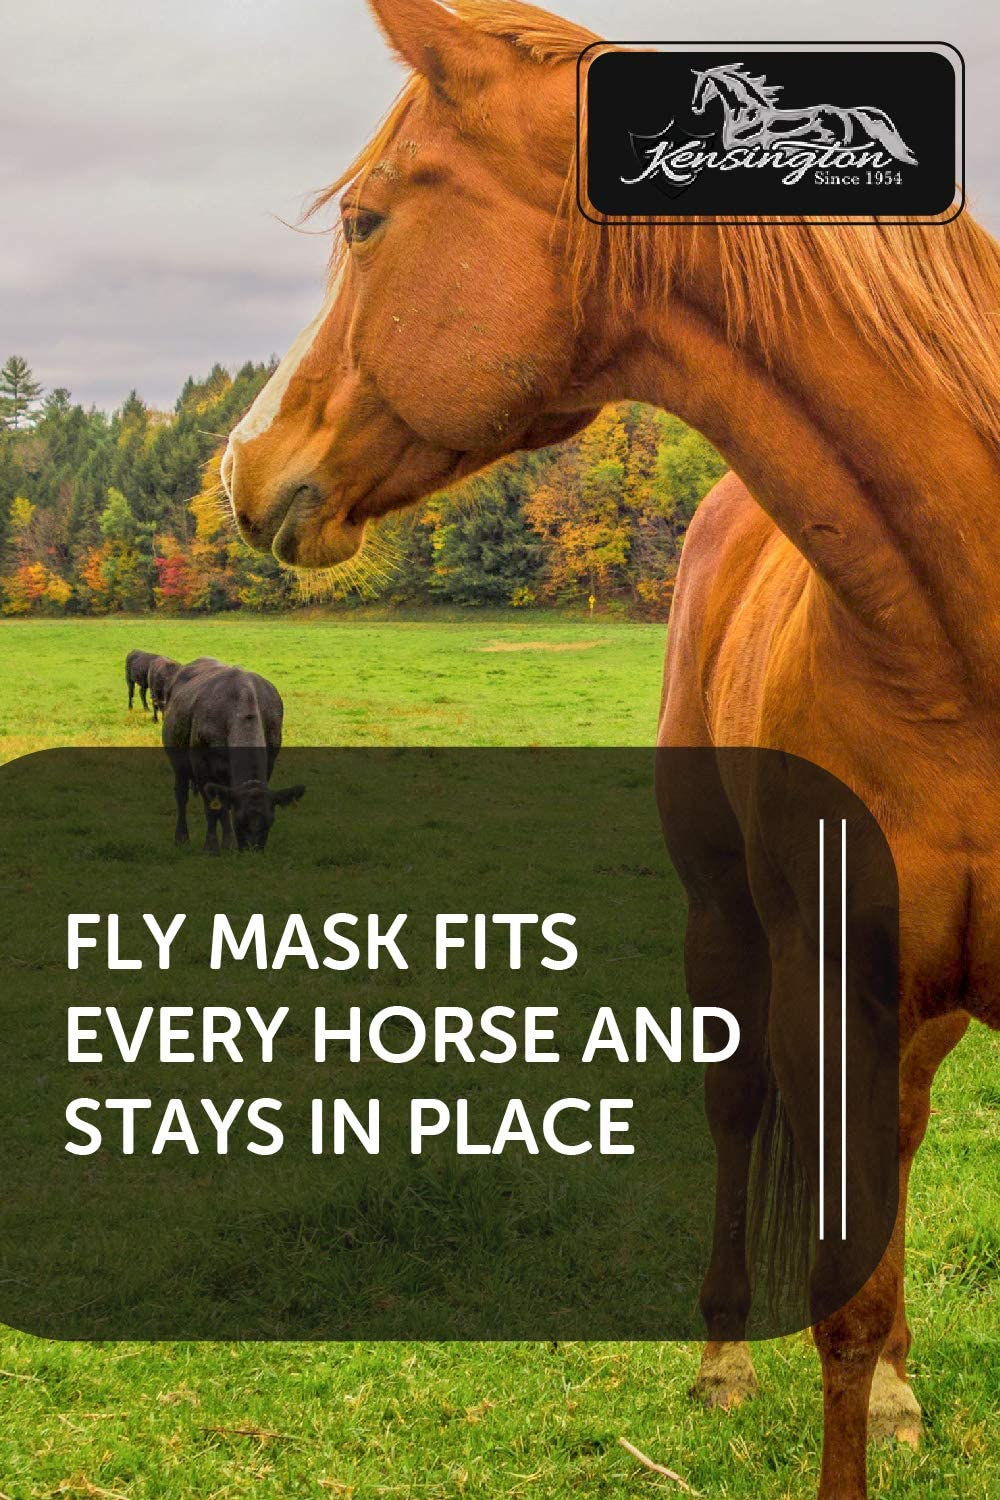 Kensington Signature Fly Mask with Removable Nose and Soft Mesh Ears /— Protects Horses Face Nose and Ears from Biting Insects and UV Rays While Allowing Full Visibility